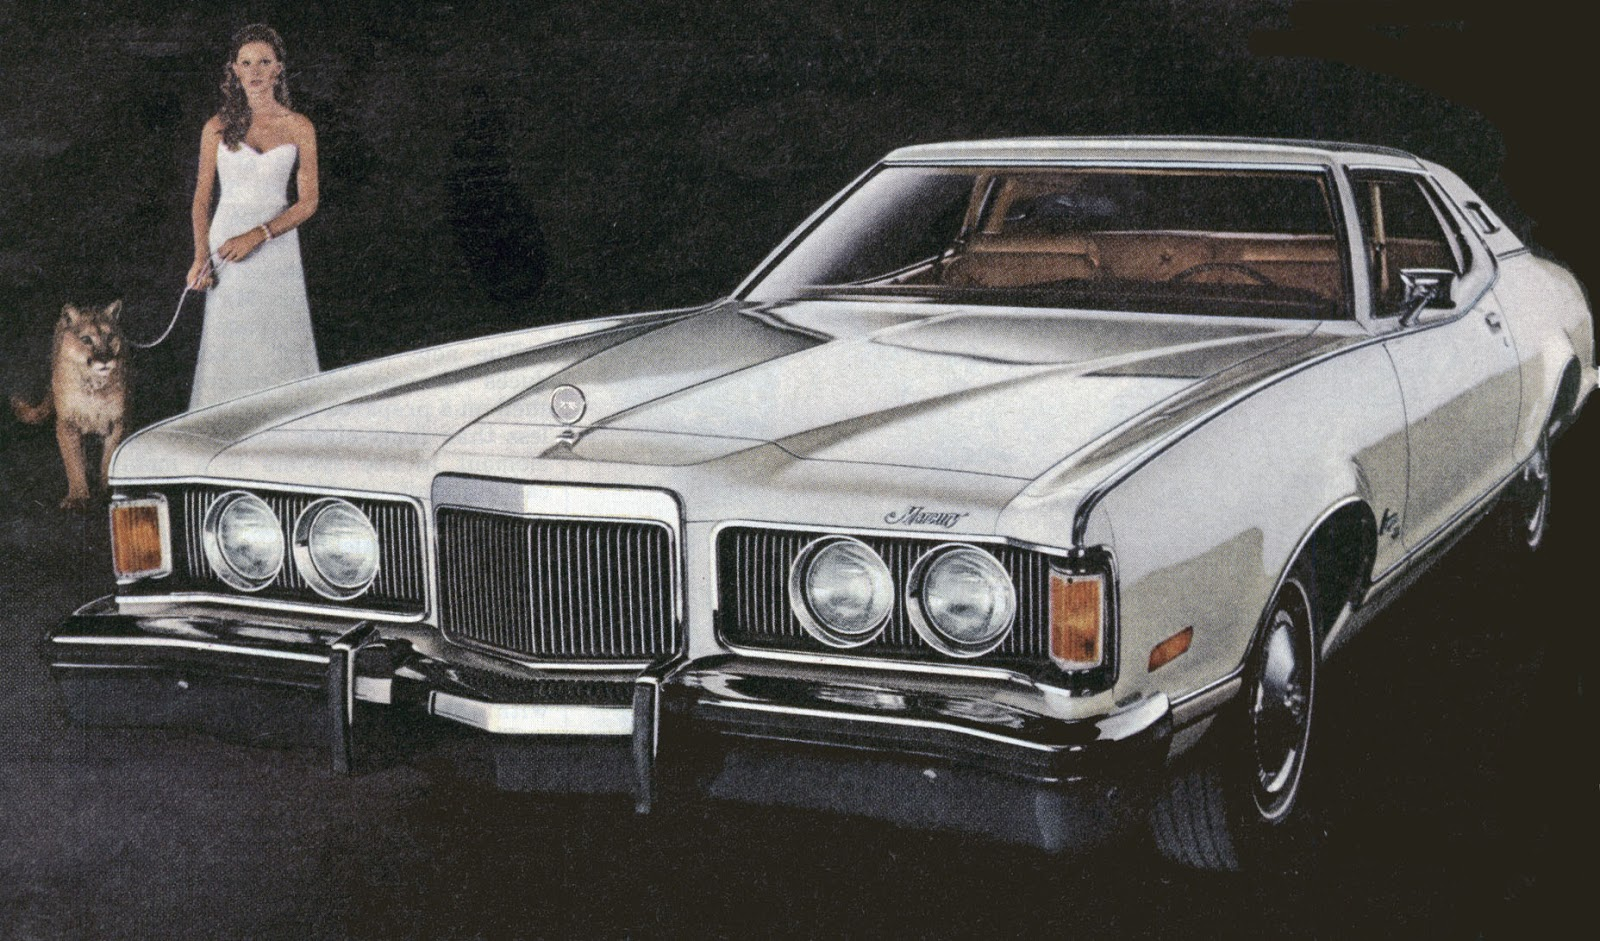 The 1974 Cougar Only Looked Same It Was Completely Diffe And Much More Posh